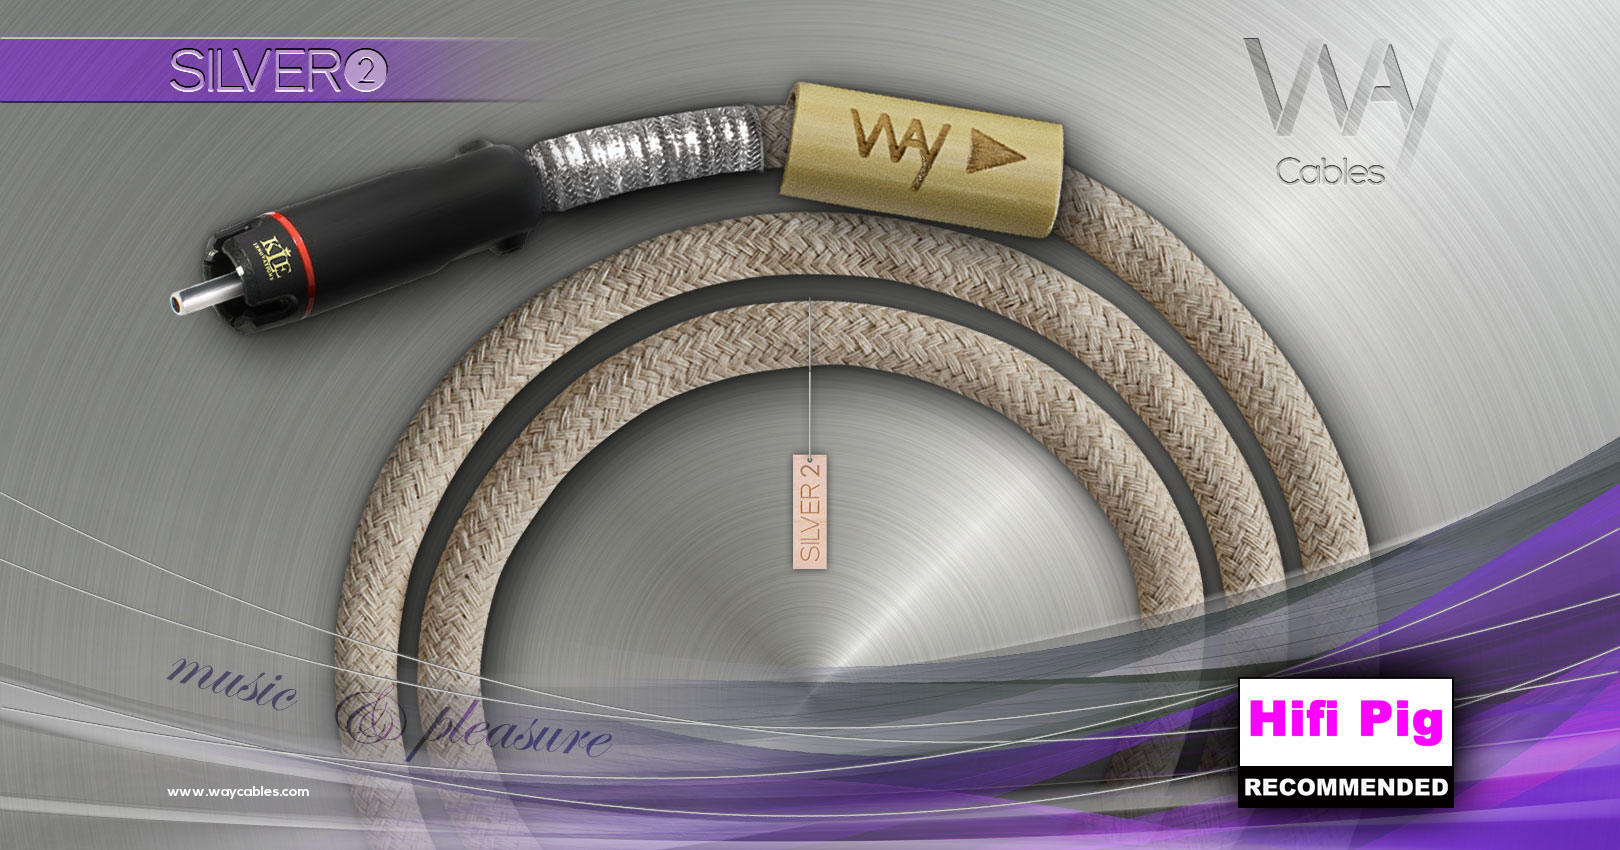 AWARDED Way Cables SILVER 2 interconnect with KLEI Copper Harmony RCA plugs - RECOMMENDED PRODUCT BY HiFi Pig Magazine